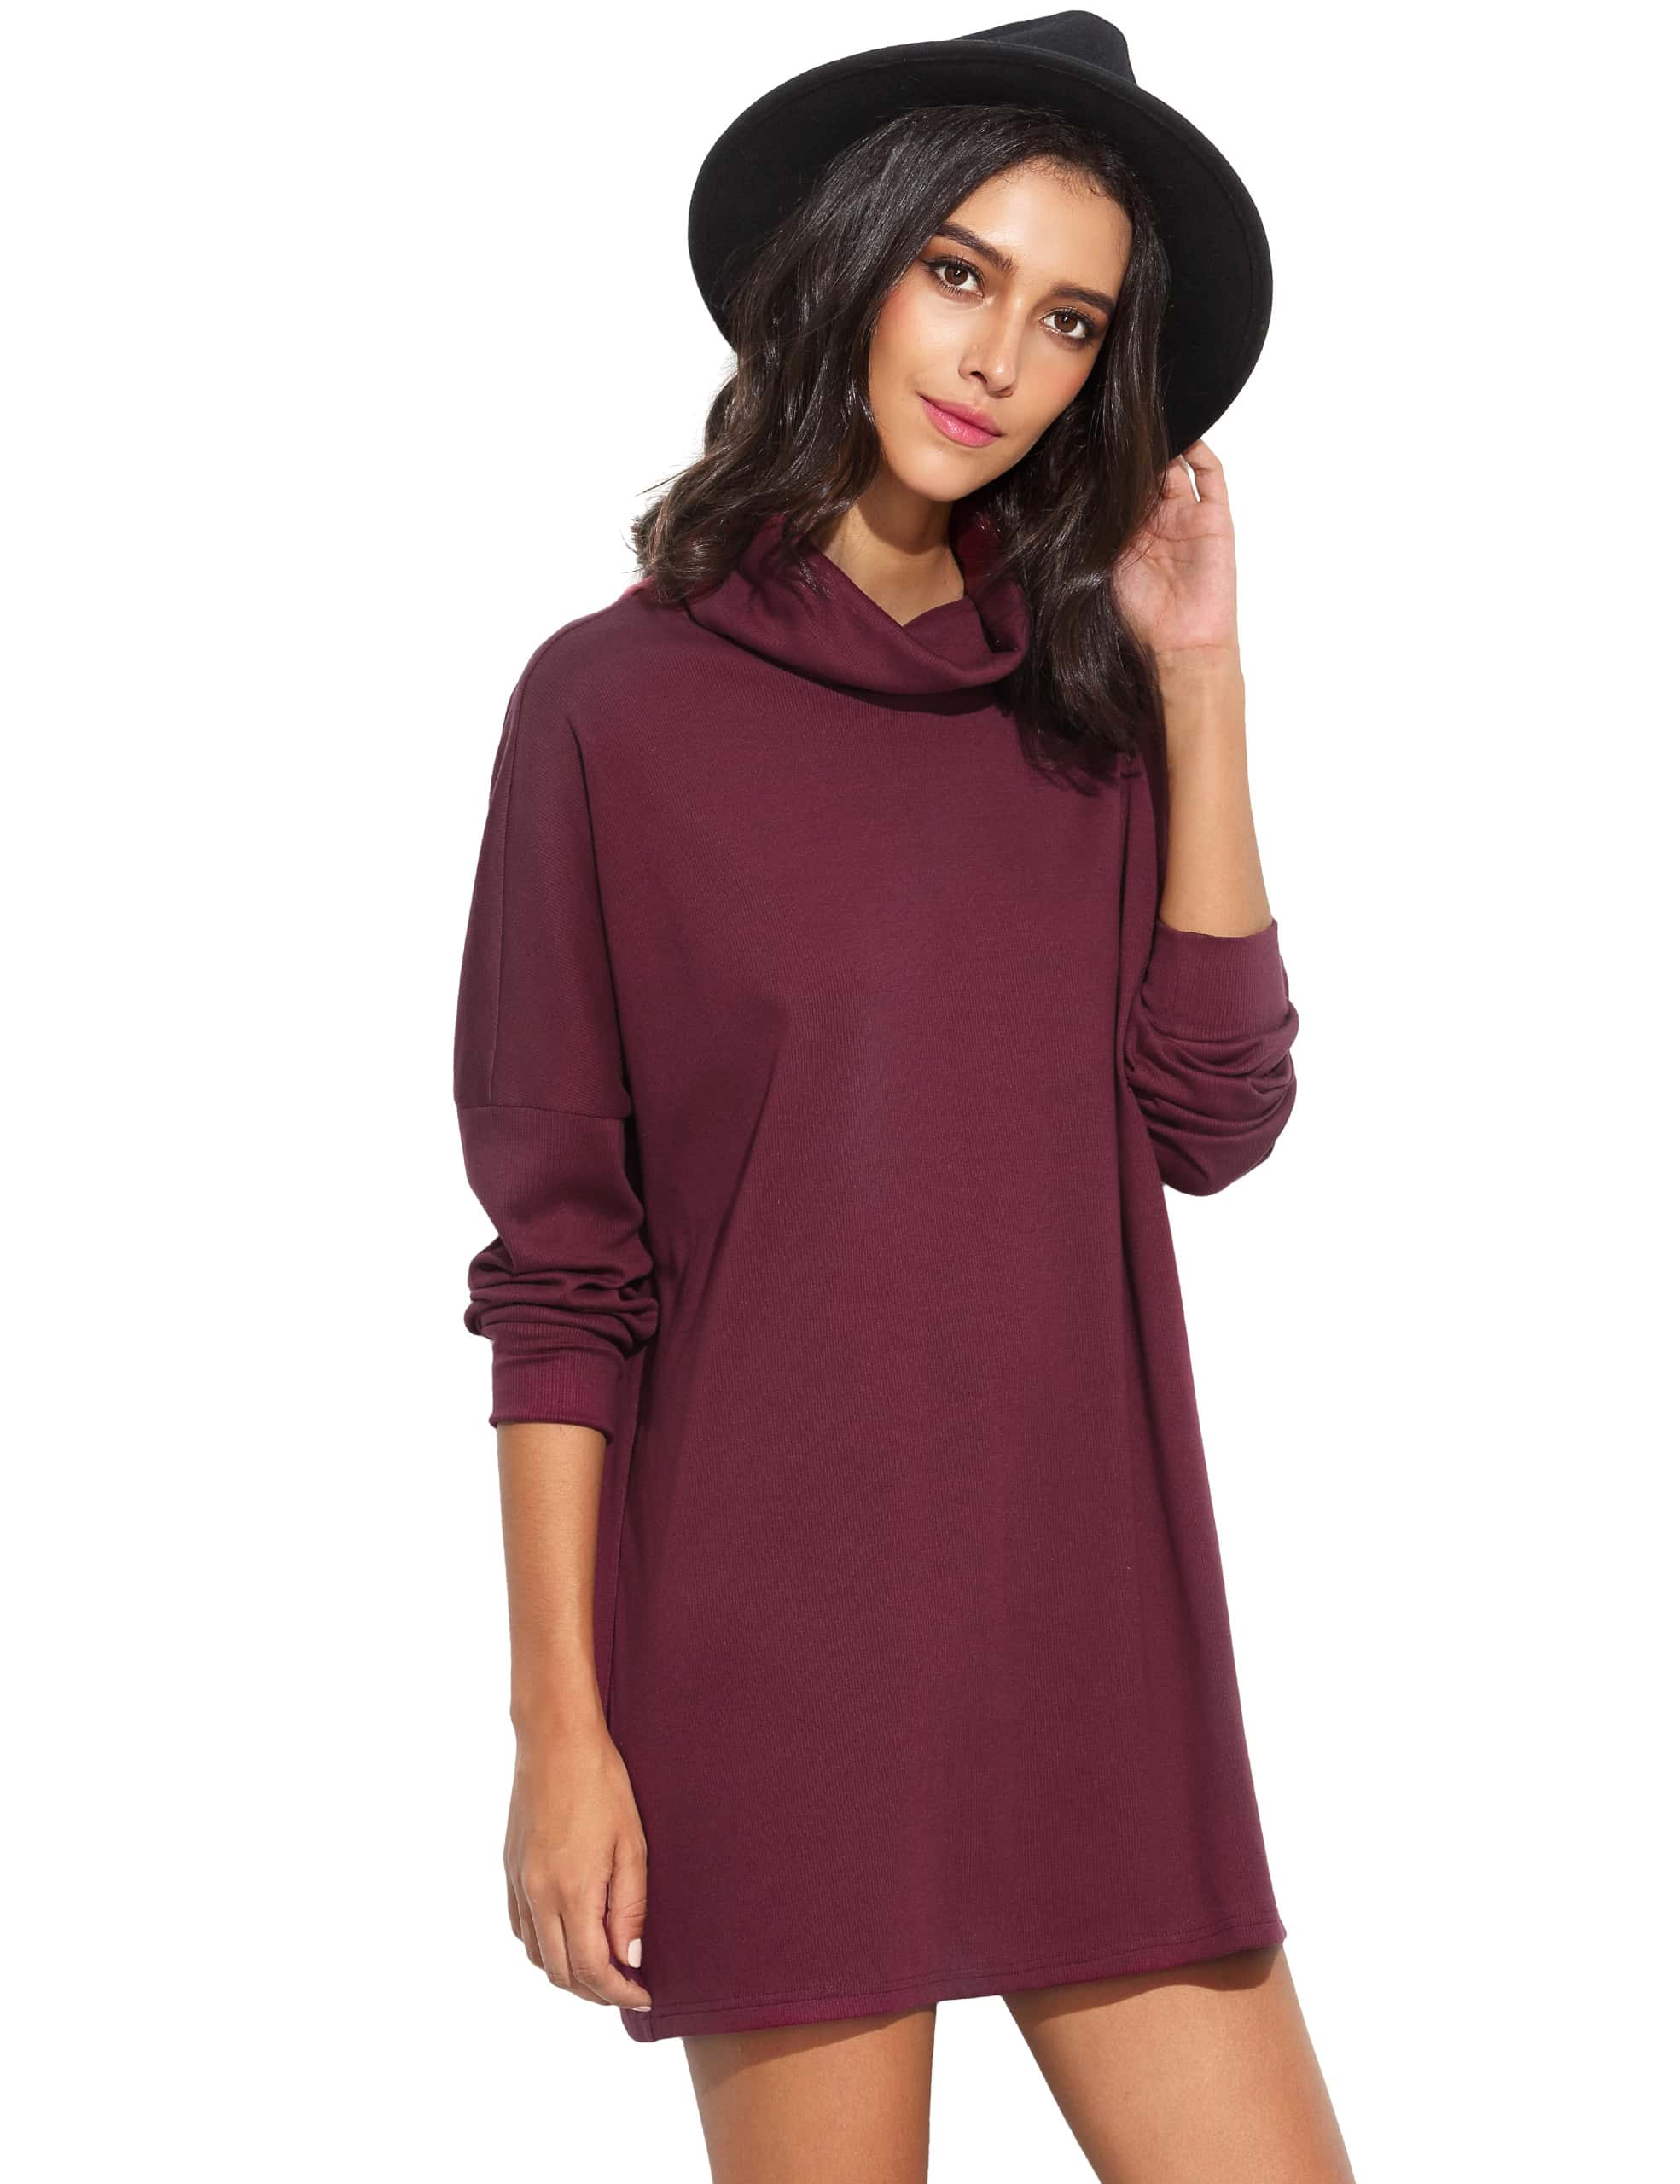 Burgundy Turtleneck Drop Shoulder Sweatshirt DressBurgundy Turtleneck Drop Shoulder Sweatshirt Dress<br><br>color: Purple<br>size: M,XS